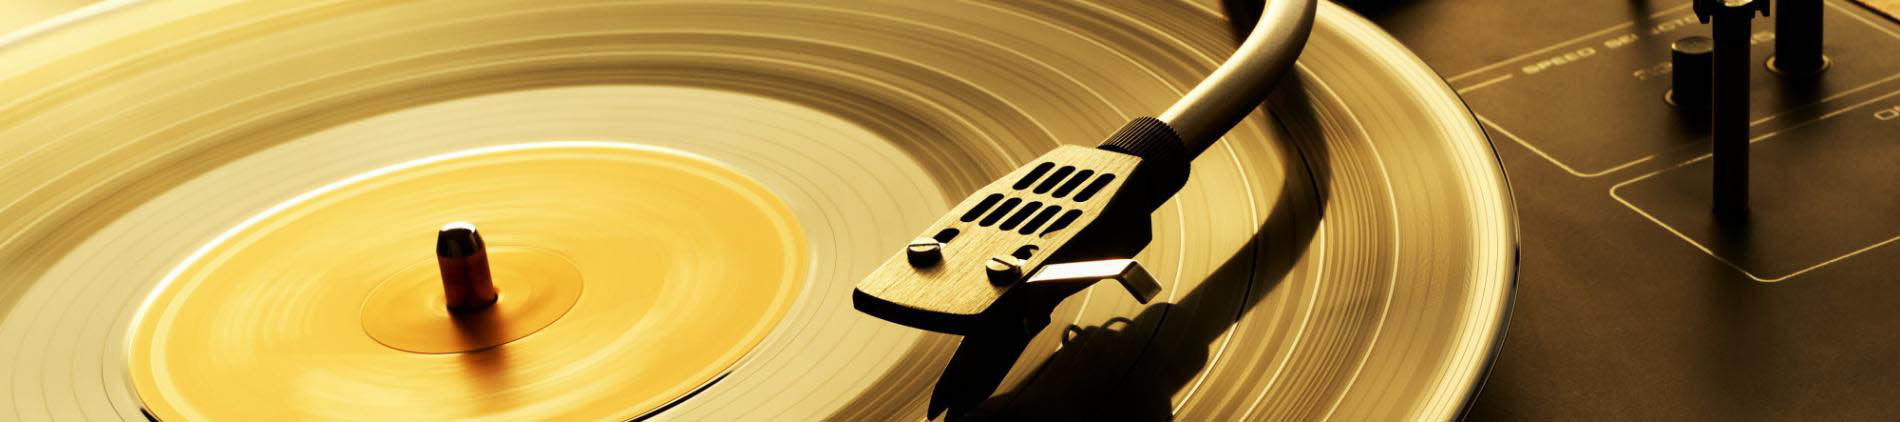 Check out our Vinyl Catalog